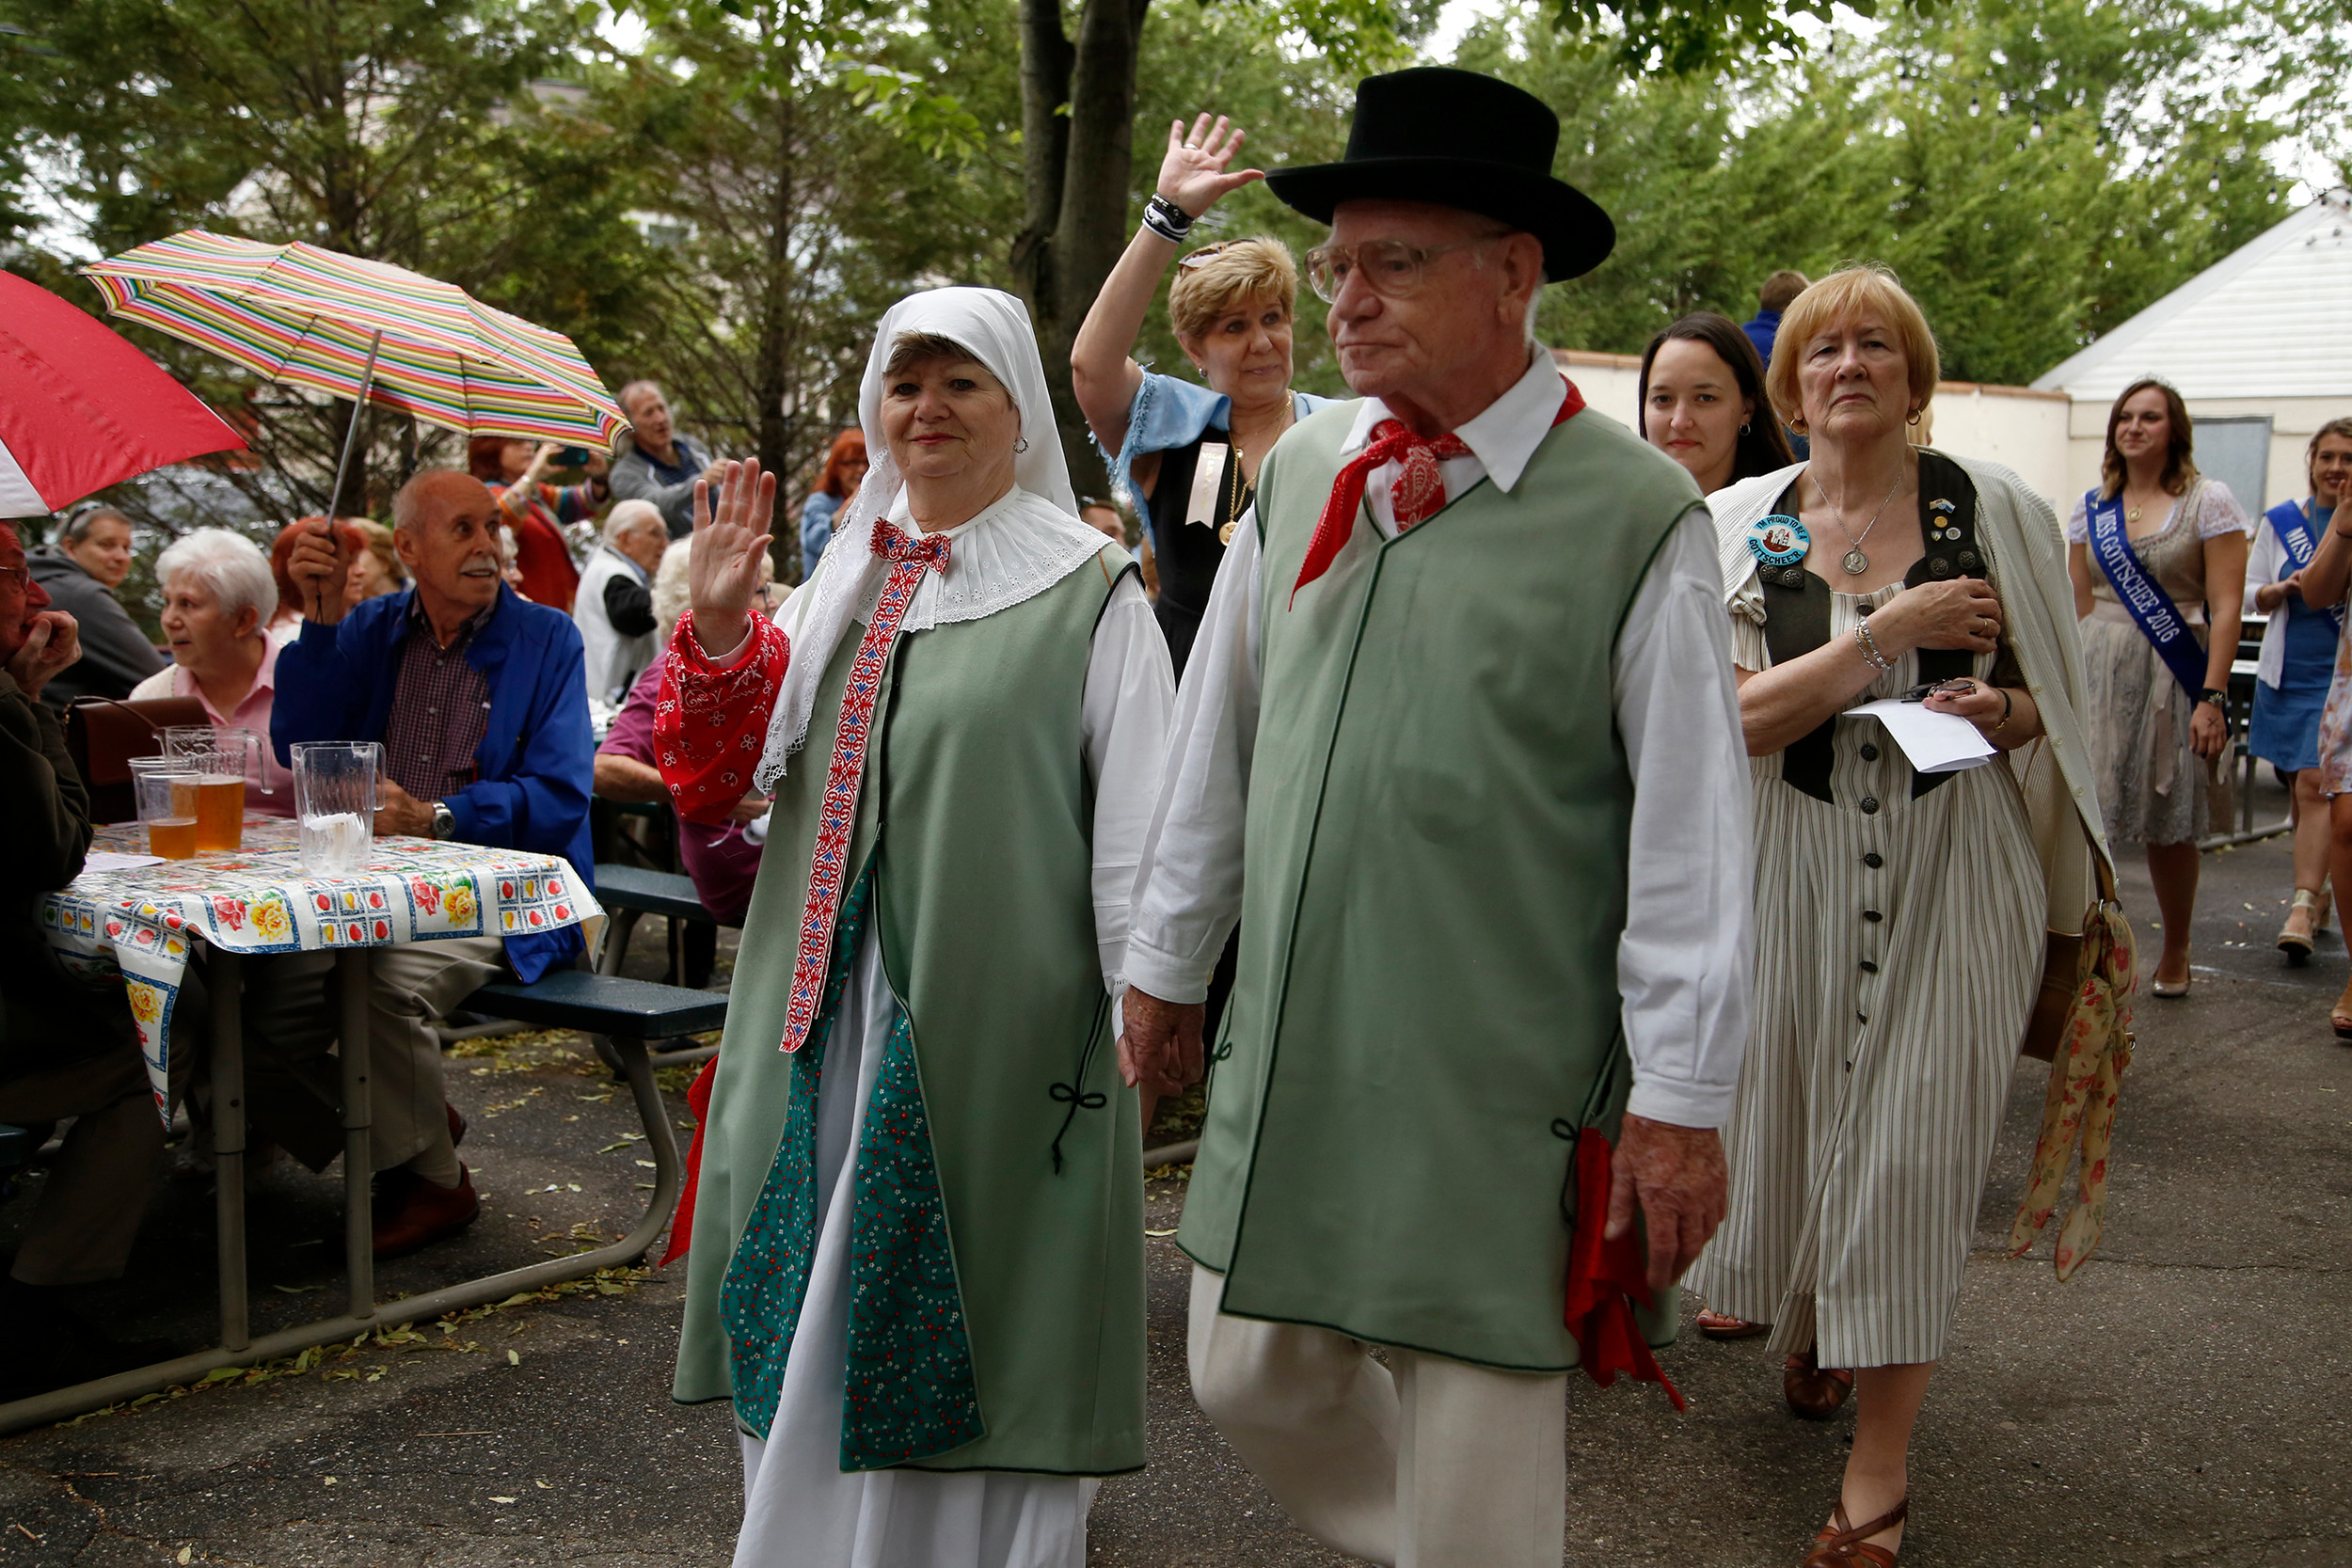 Participants took part in full German garb in the 71st annual Gottscheer Volkfest parade at the Plattduetsche Park Restaurant in Franklin Square on June 4.